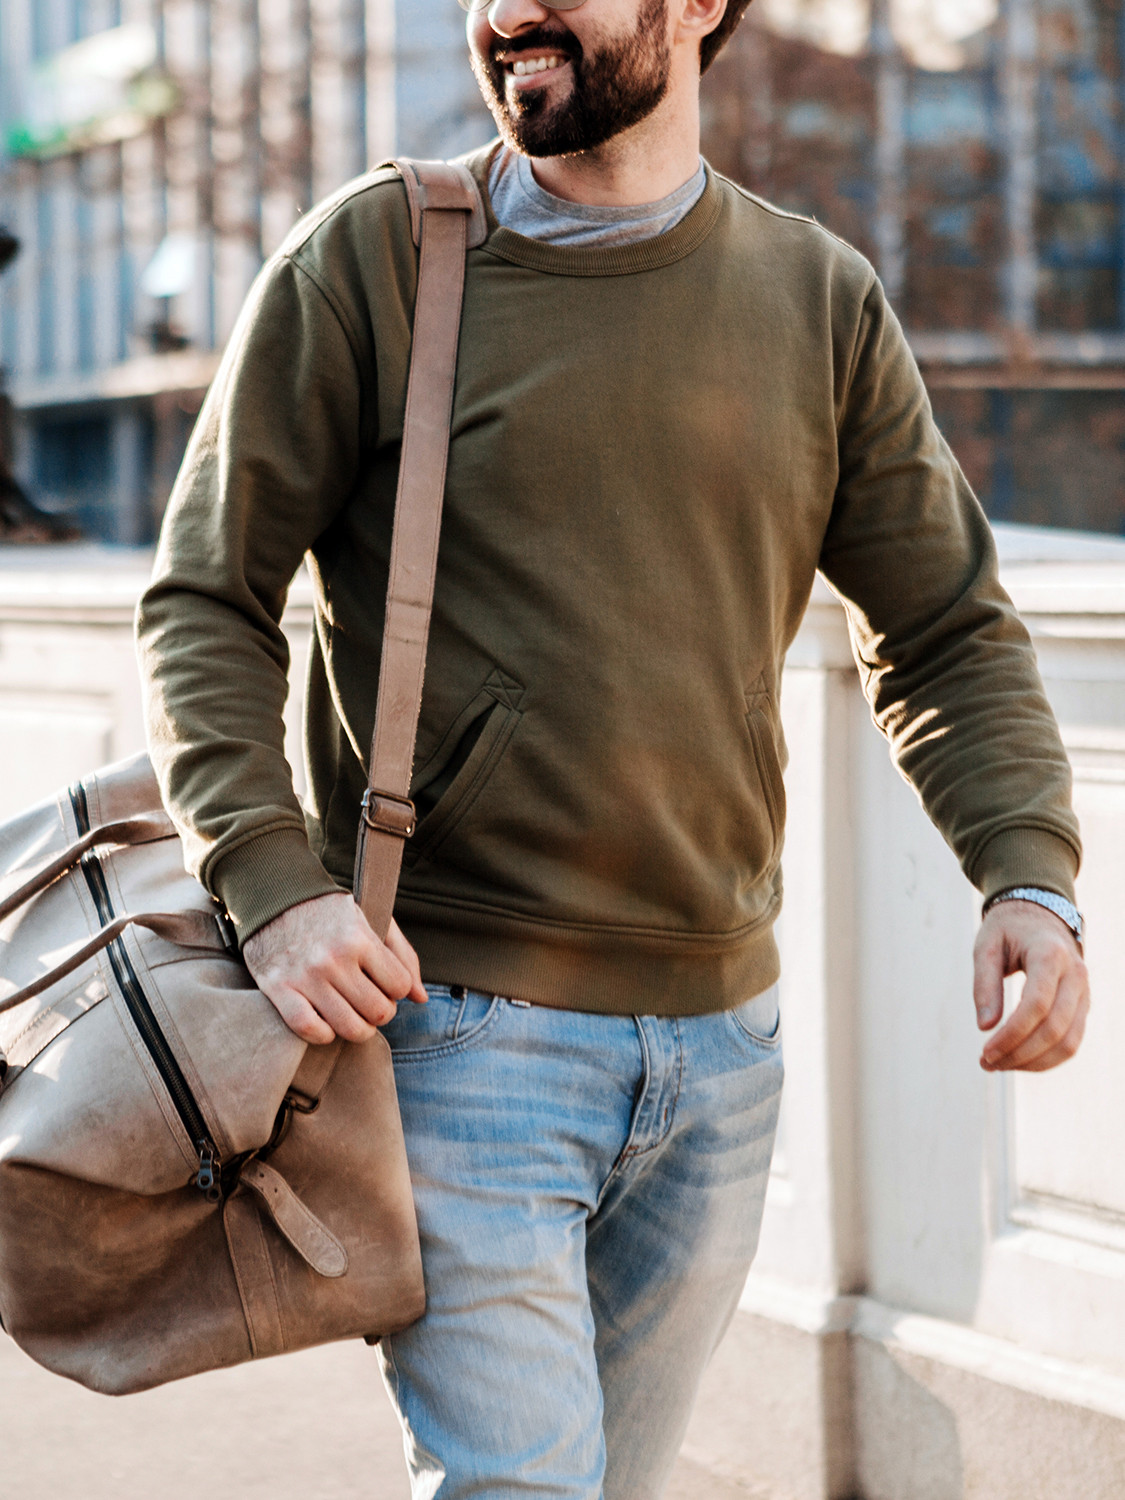 Men's outfit idea for 2021 with green plain sweatshirt, gray crew neck t-shirt, mid blue jeans. Suitable for spring and fall.